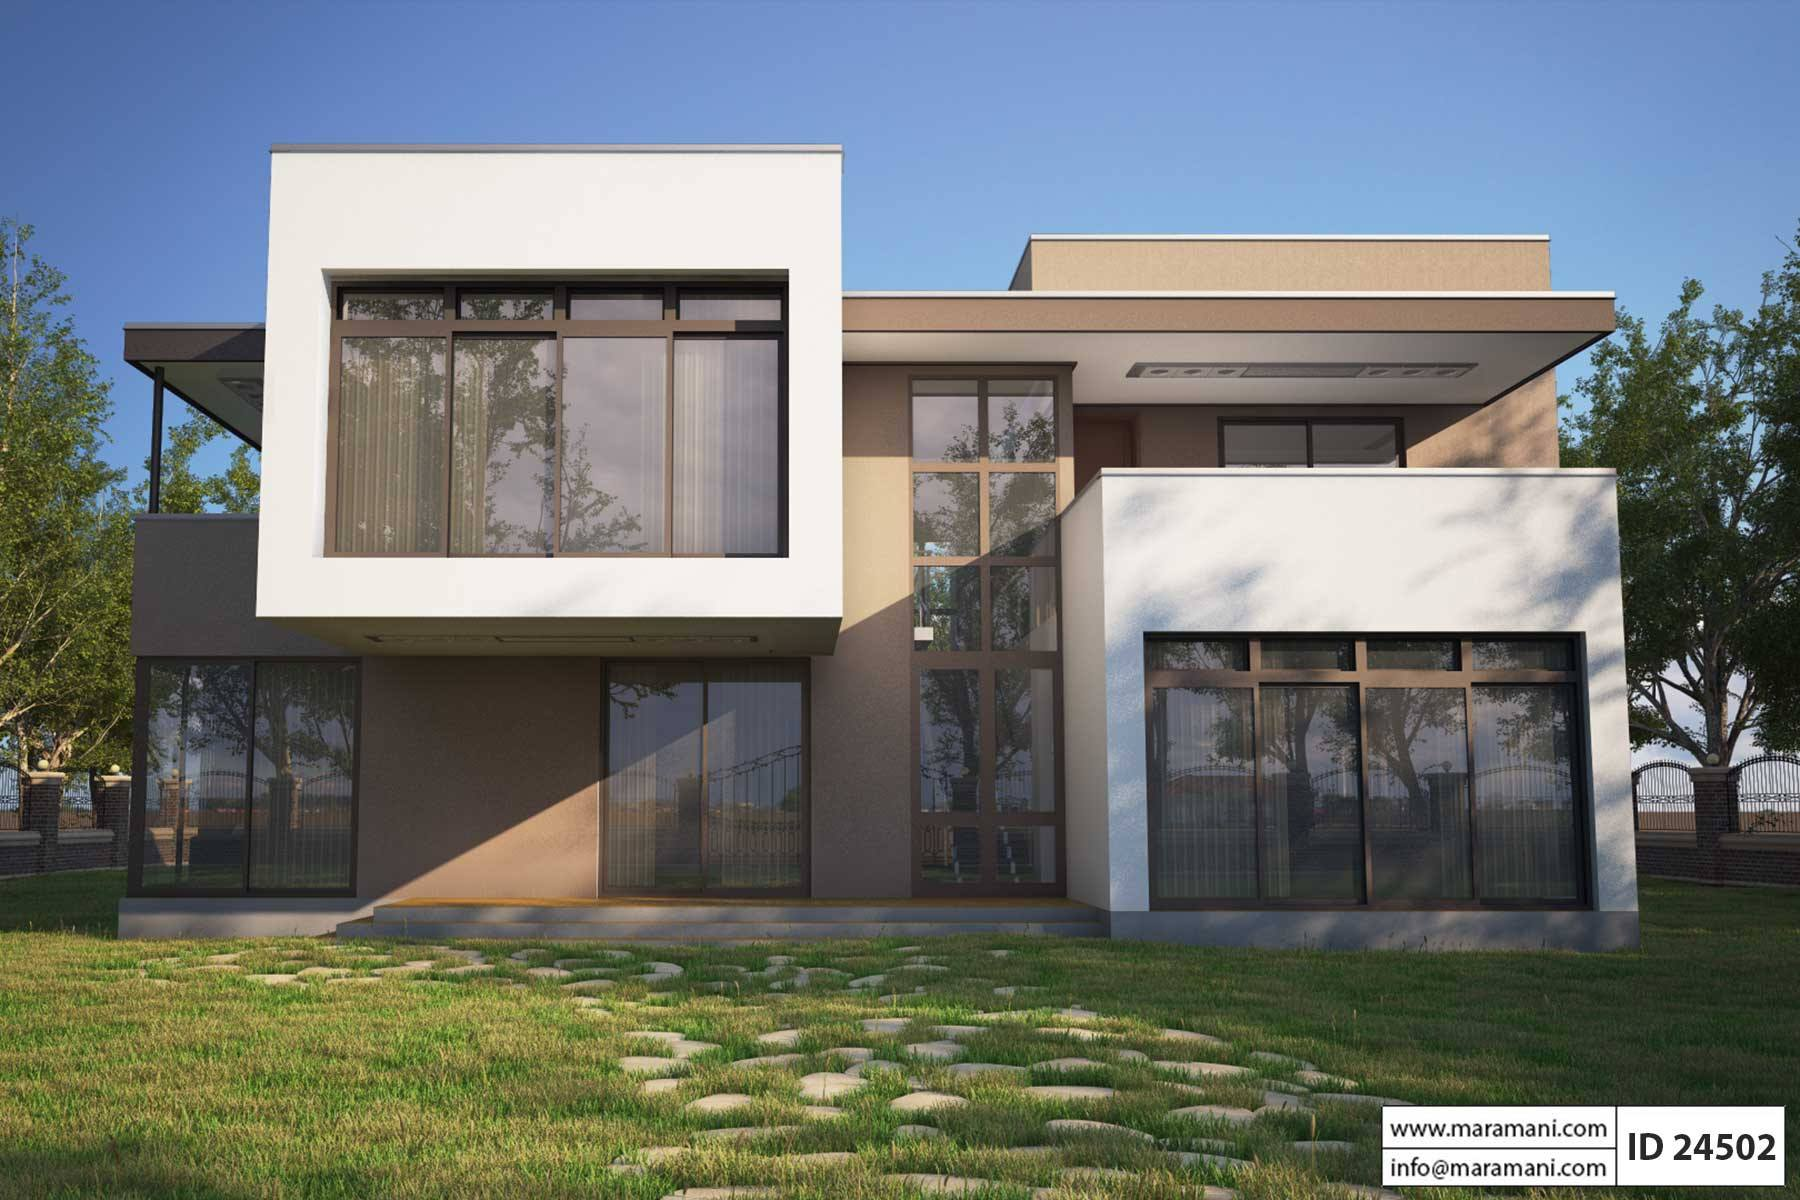 4 bedroom modern house plan id 24502 house plans maramani for 4 bedroom house designs